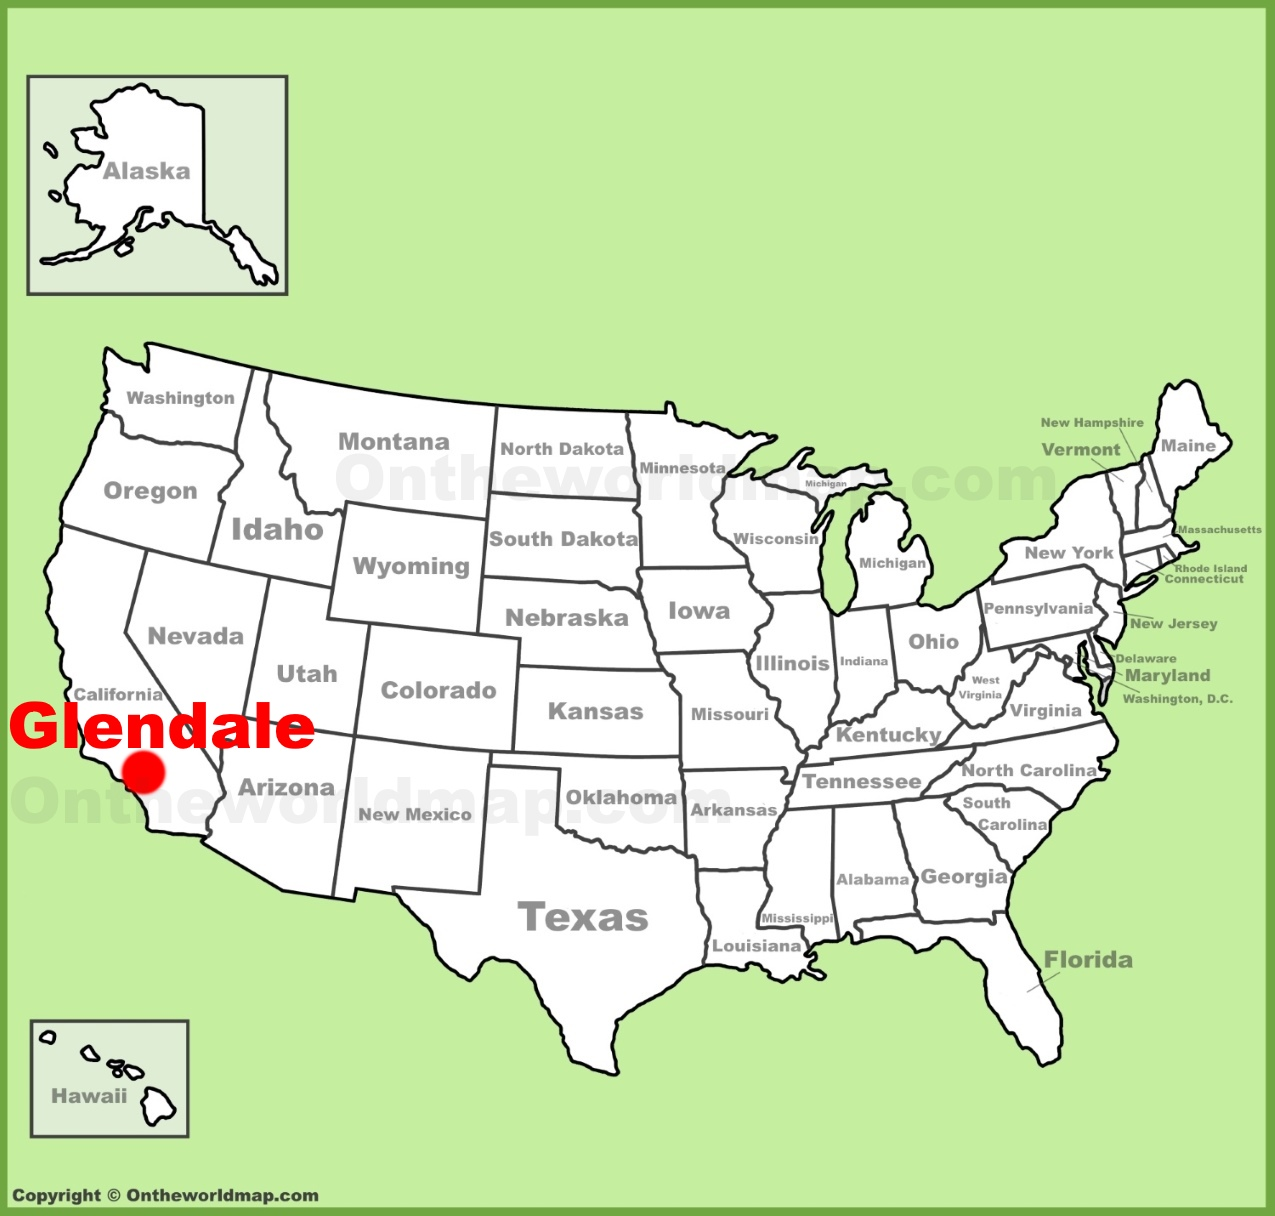 Glendale California Map Glendale (California) location on the U.S. Map